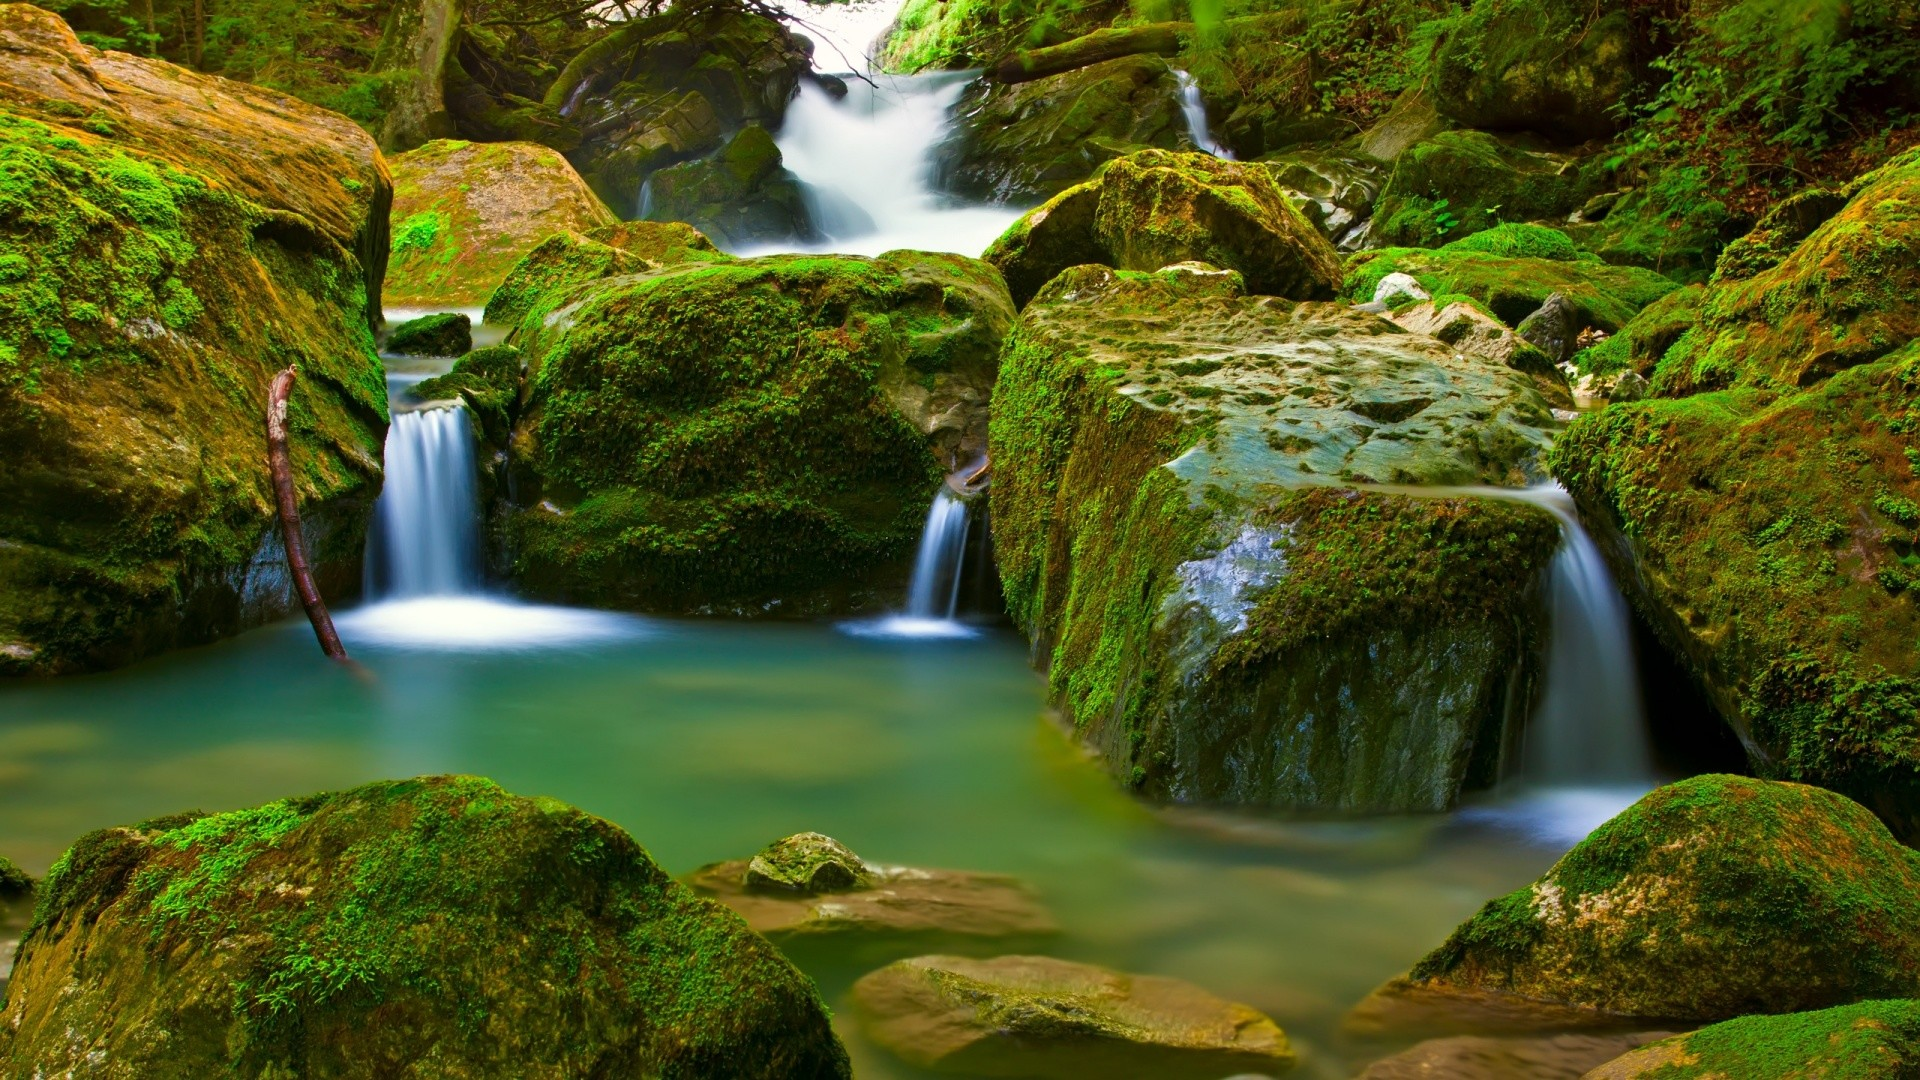 1920x1080 ... Beautiful Nature Wallpaper For Desktop 3d Waterfalls 15 Beautiful  Waterfall. Desktop 1024x768 Landscape Desktop Wps ...